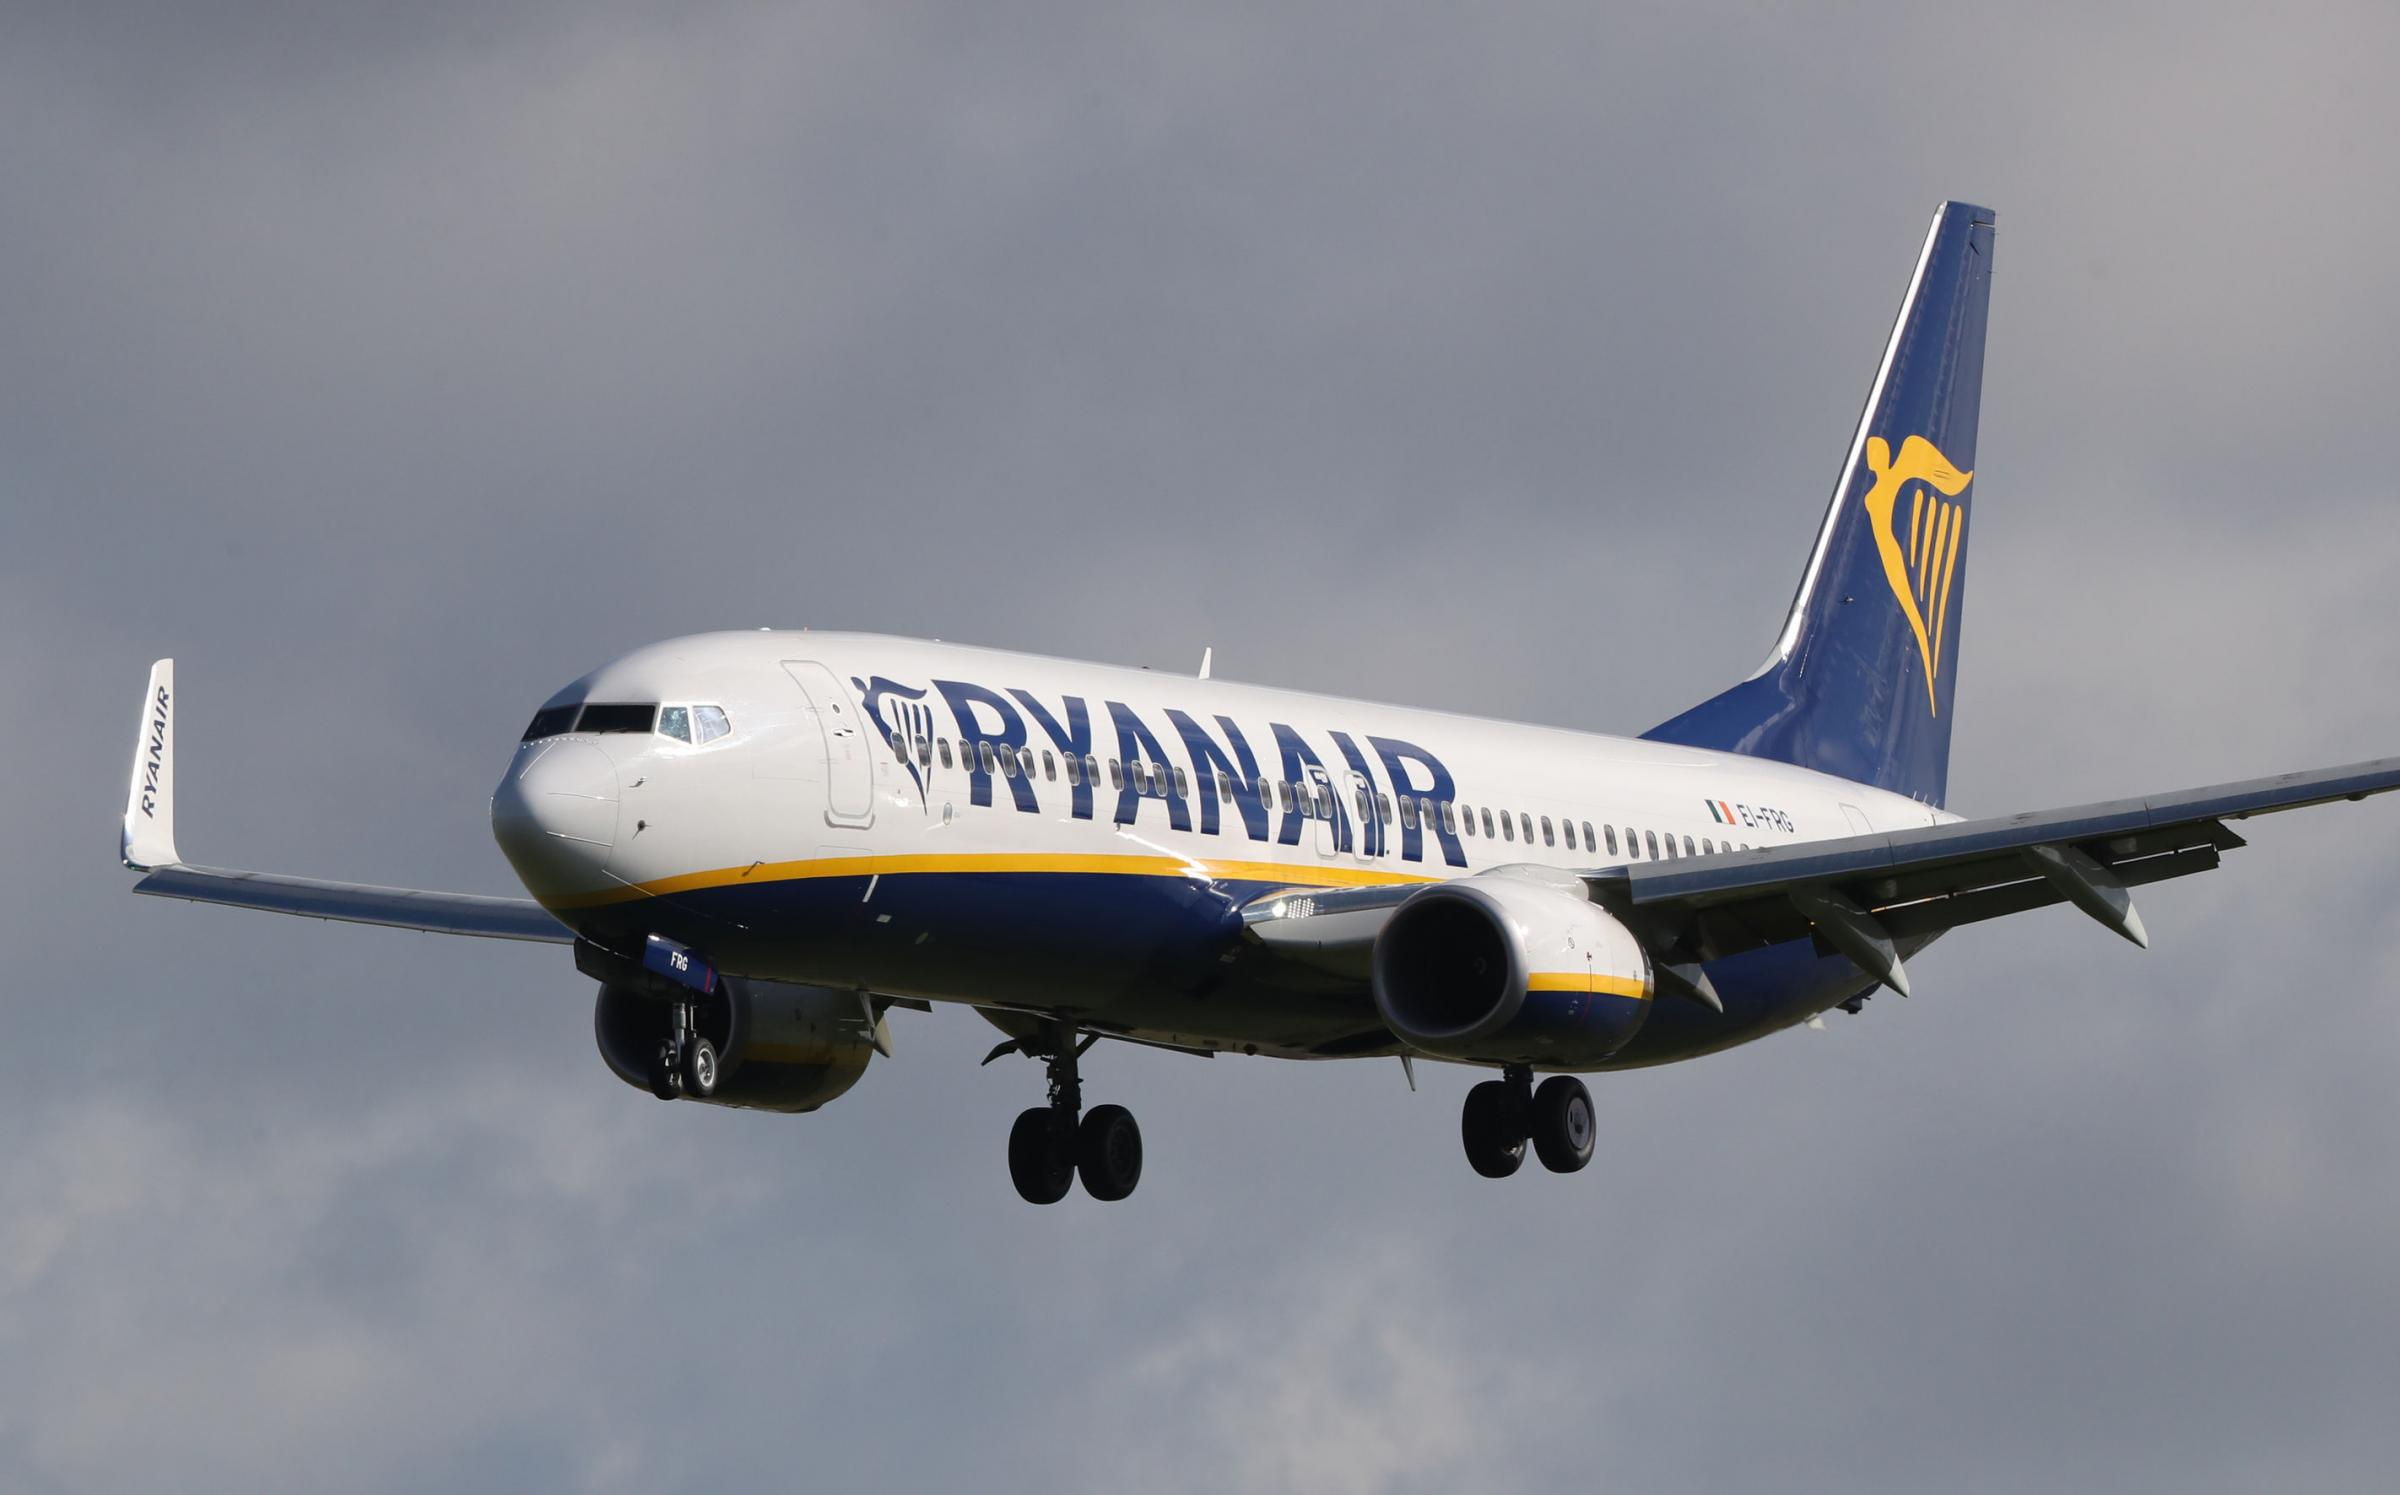 The new route will run twice a week as part of Ryanair's winter schedule